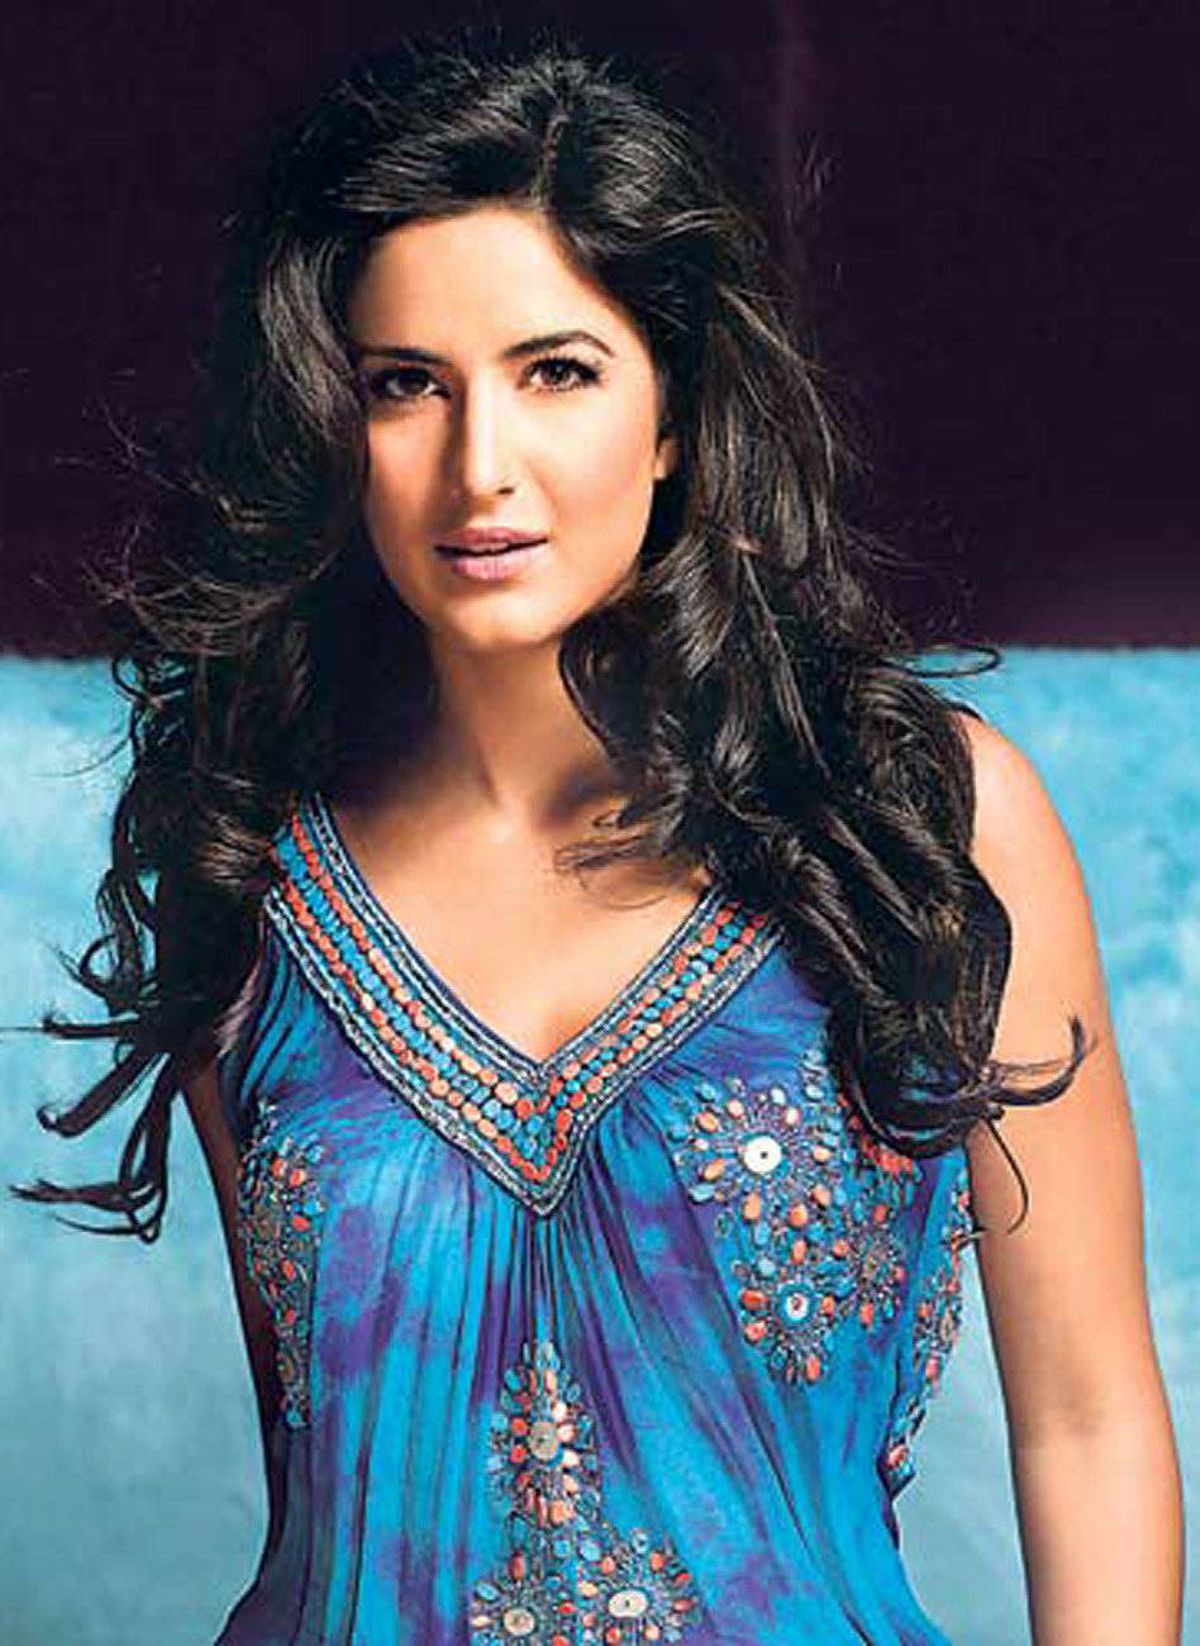 Katrina Kaif The return of the British to India was applauded when English-born Katrina Kaif joined Bollywood. Since she started in 2005, the actress and model has become a favourite despite only a handful of commercial hits. Her special niche: A magnetic on-screen presence mingled with a sweet off-screen innocence.